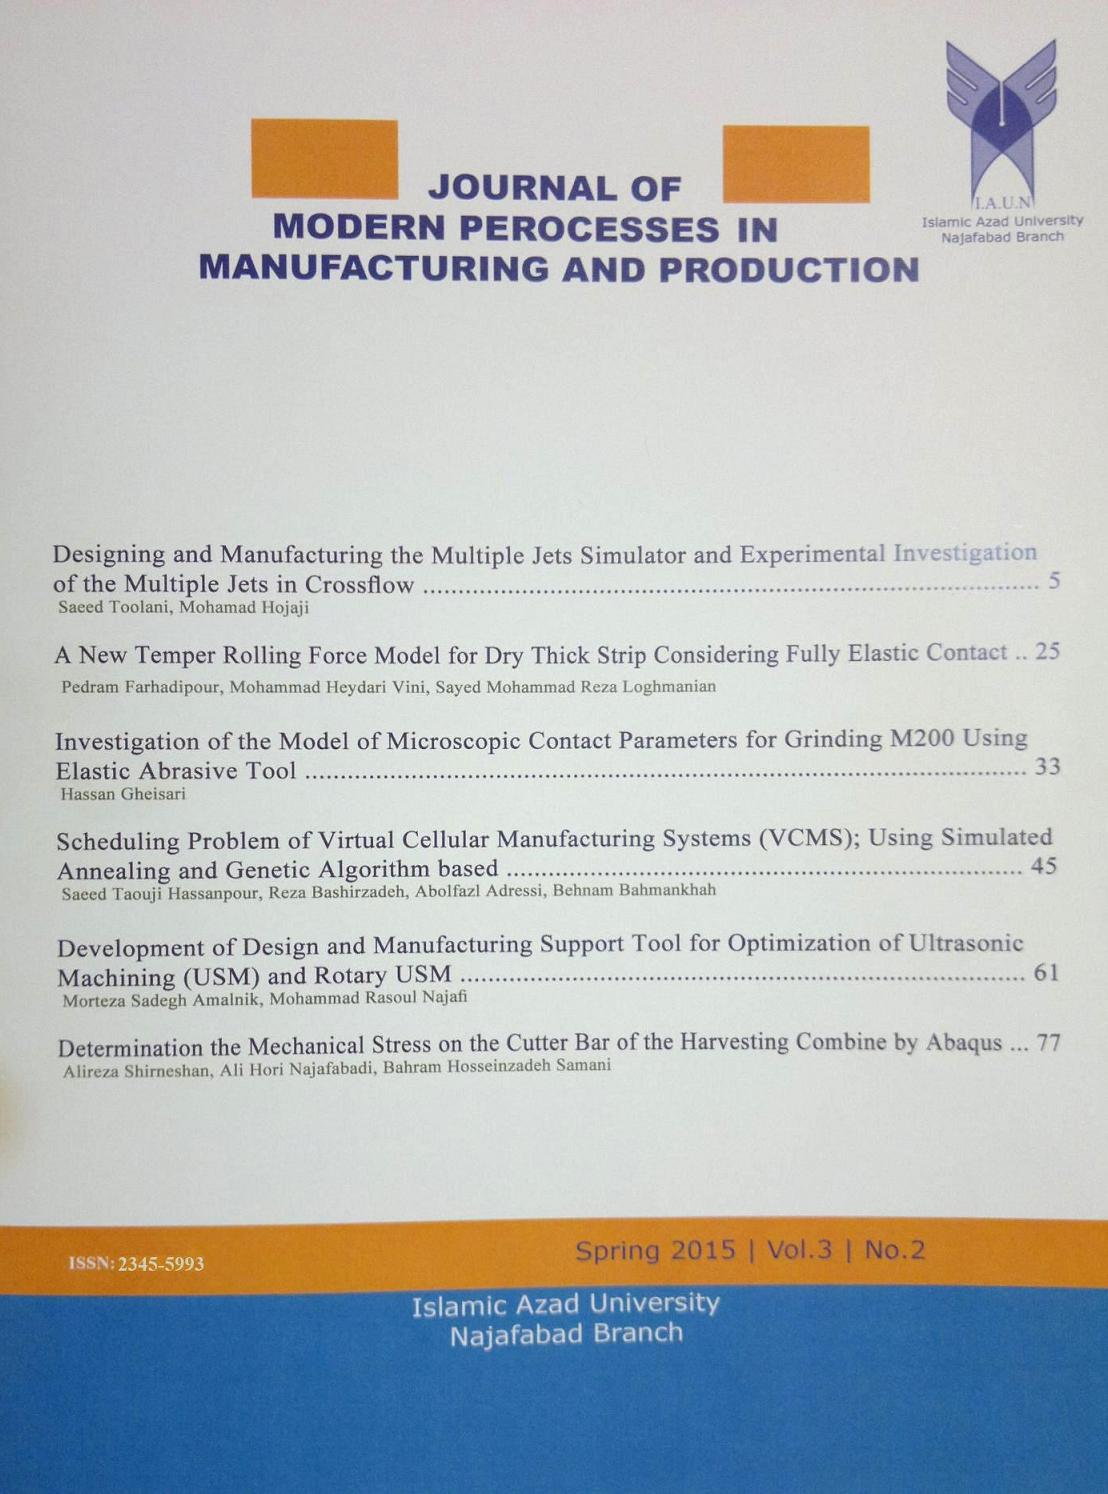 Journal of Modern Processes of Manufacturing Engineering